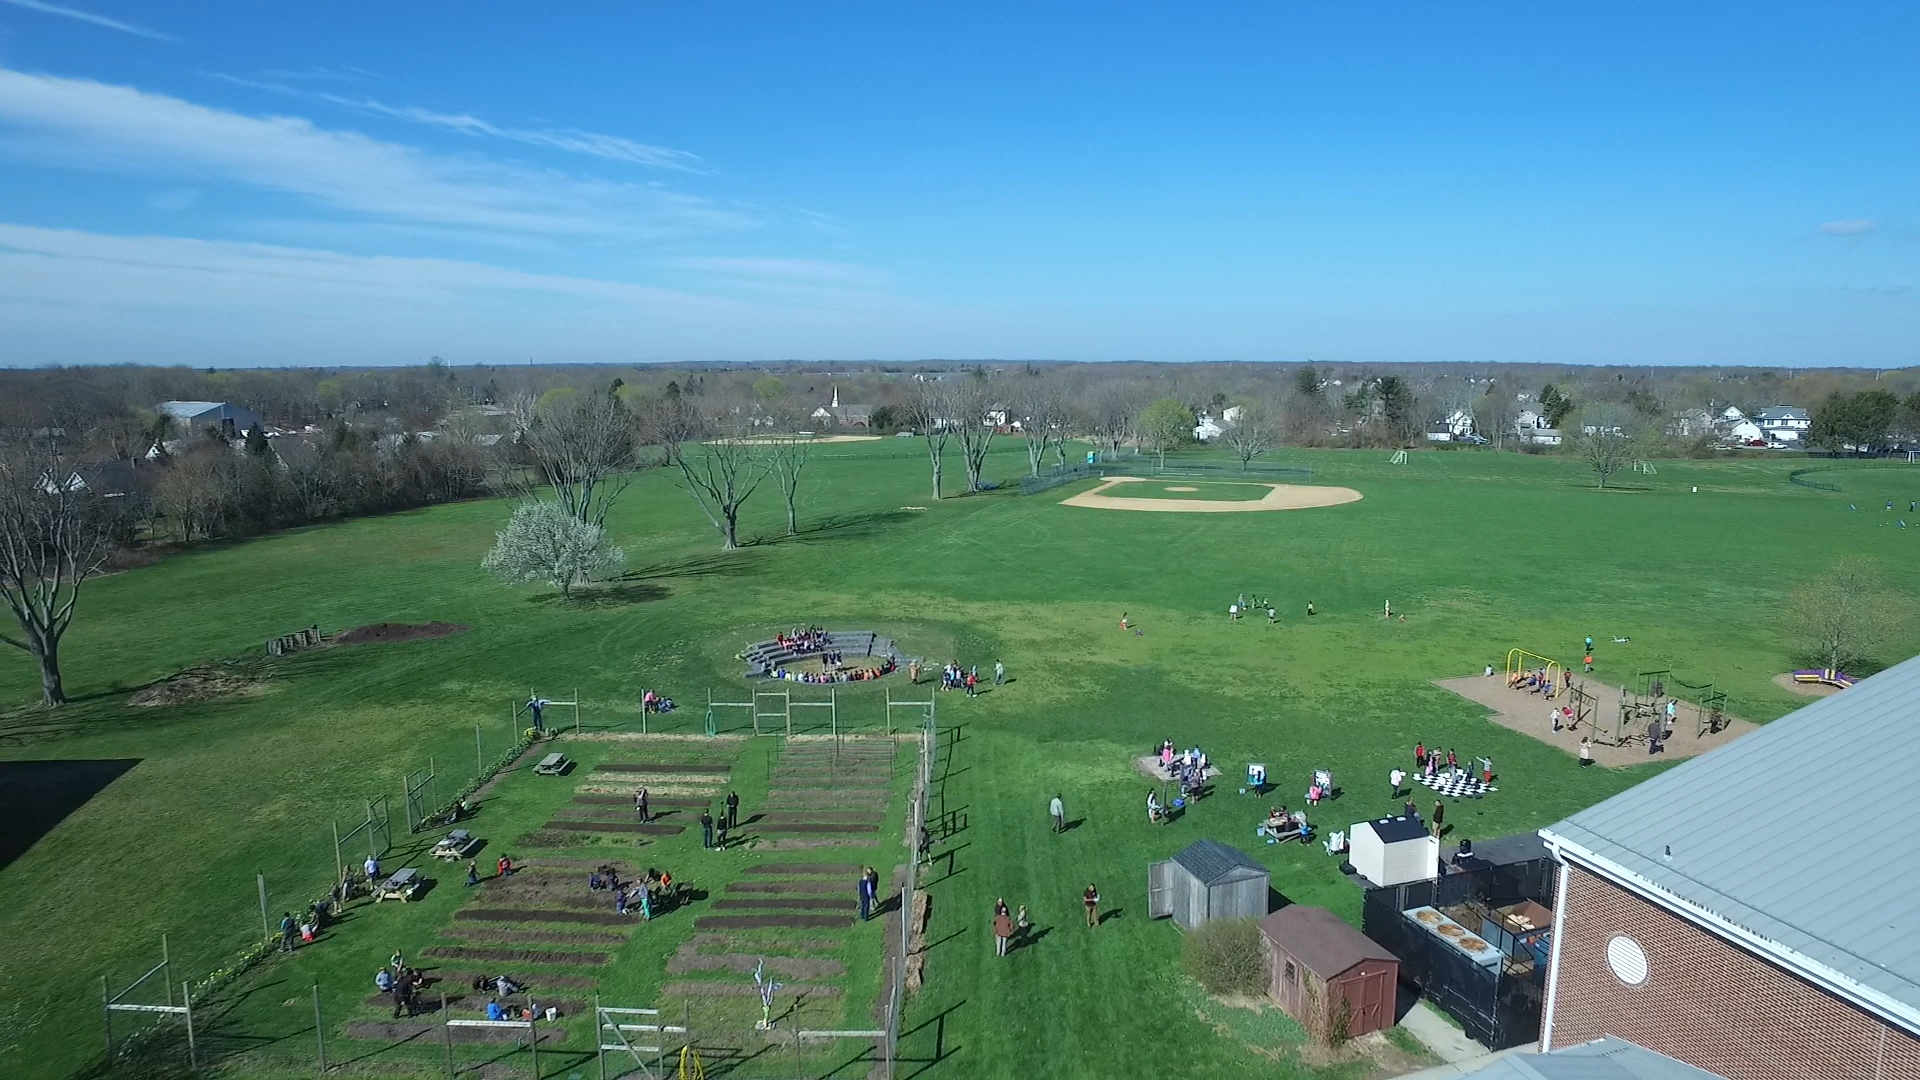 An aerial view of Tuesday's recess from aerial videographer Andrew LePre. (Credit: LePre Media)